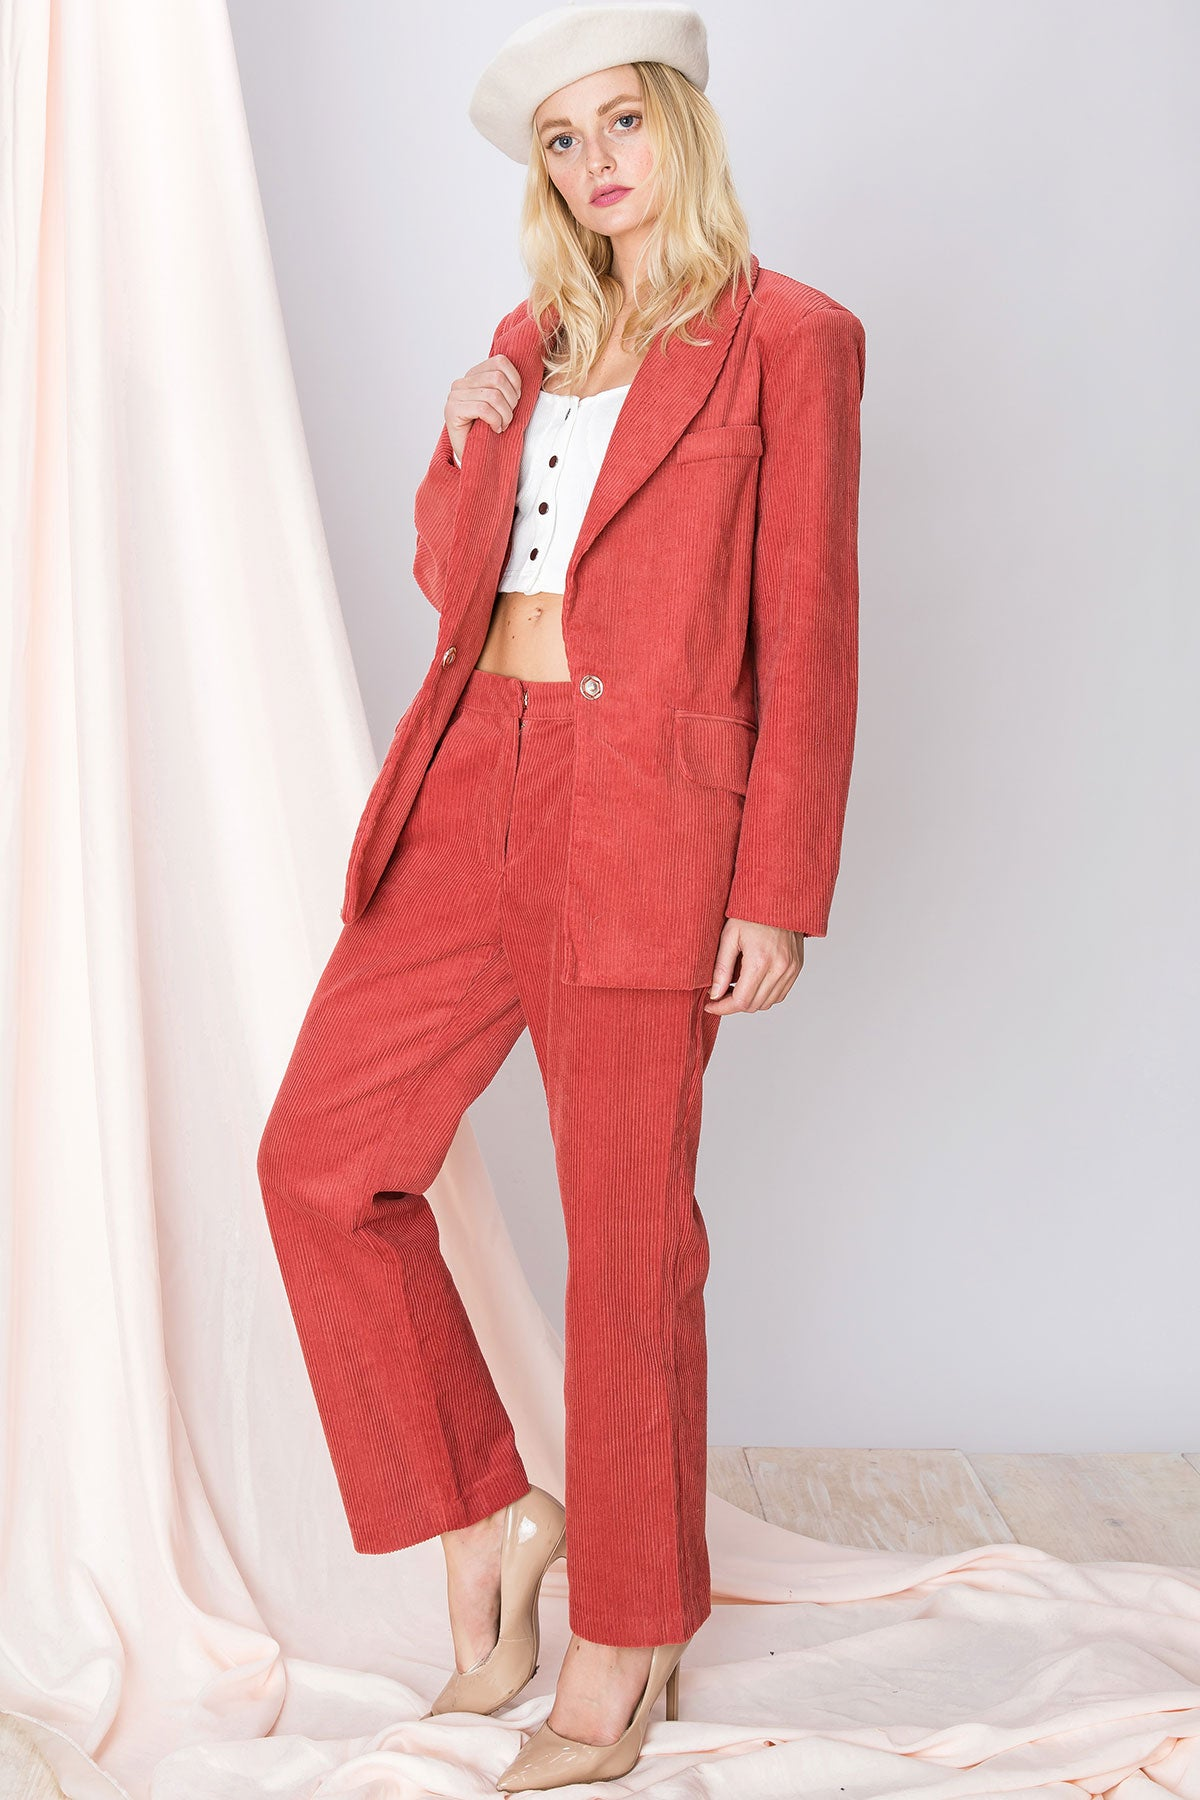 Solie Corduroy Jacket and Pant Set